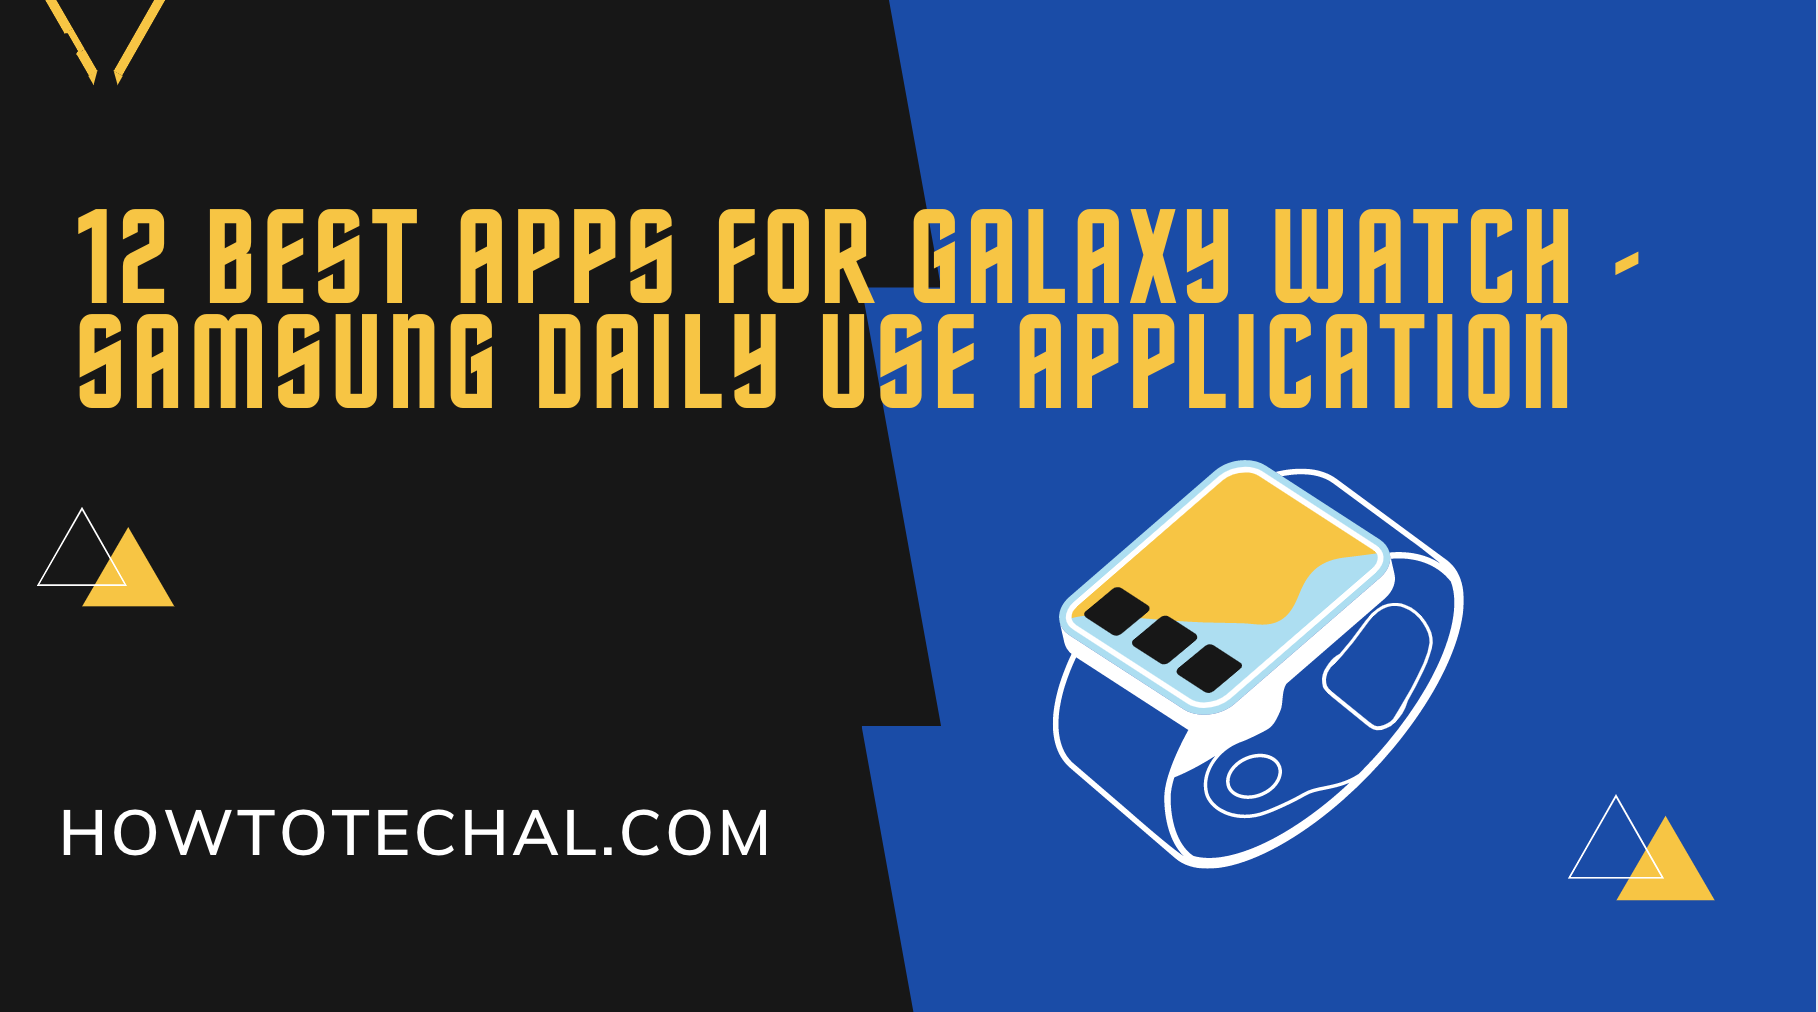 12 Best Apps for Galaxy Watch – Samsung Daily Use Application